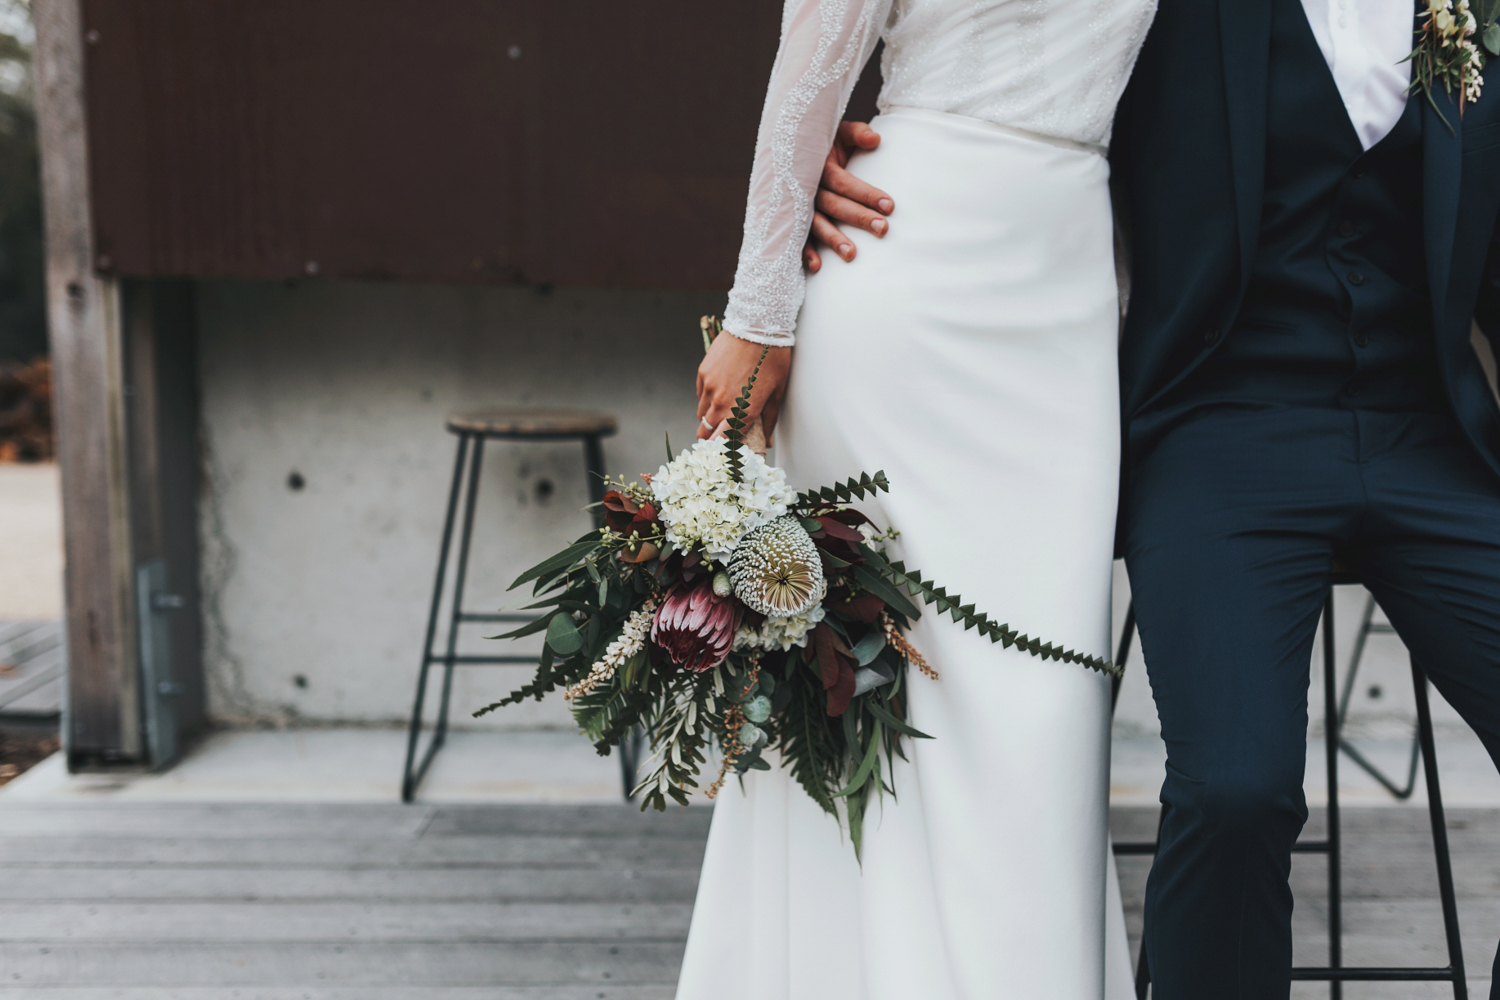 beautiful image of native bouquet being held by bride.